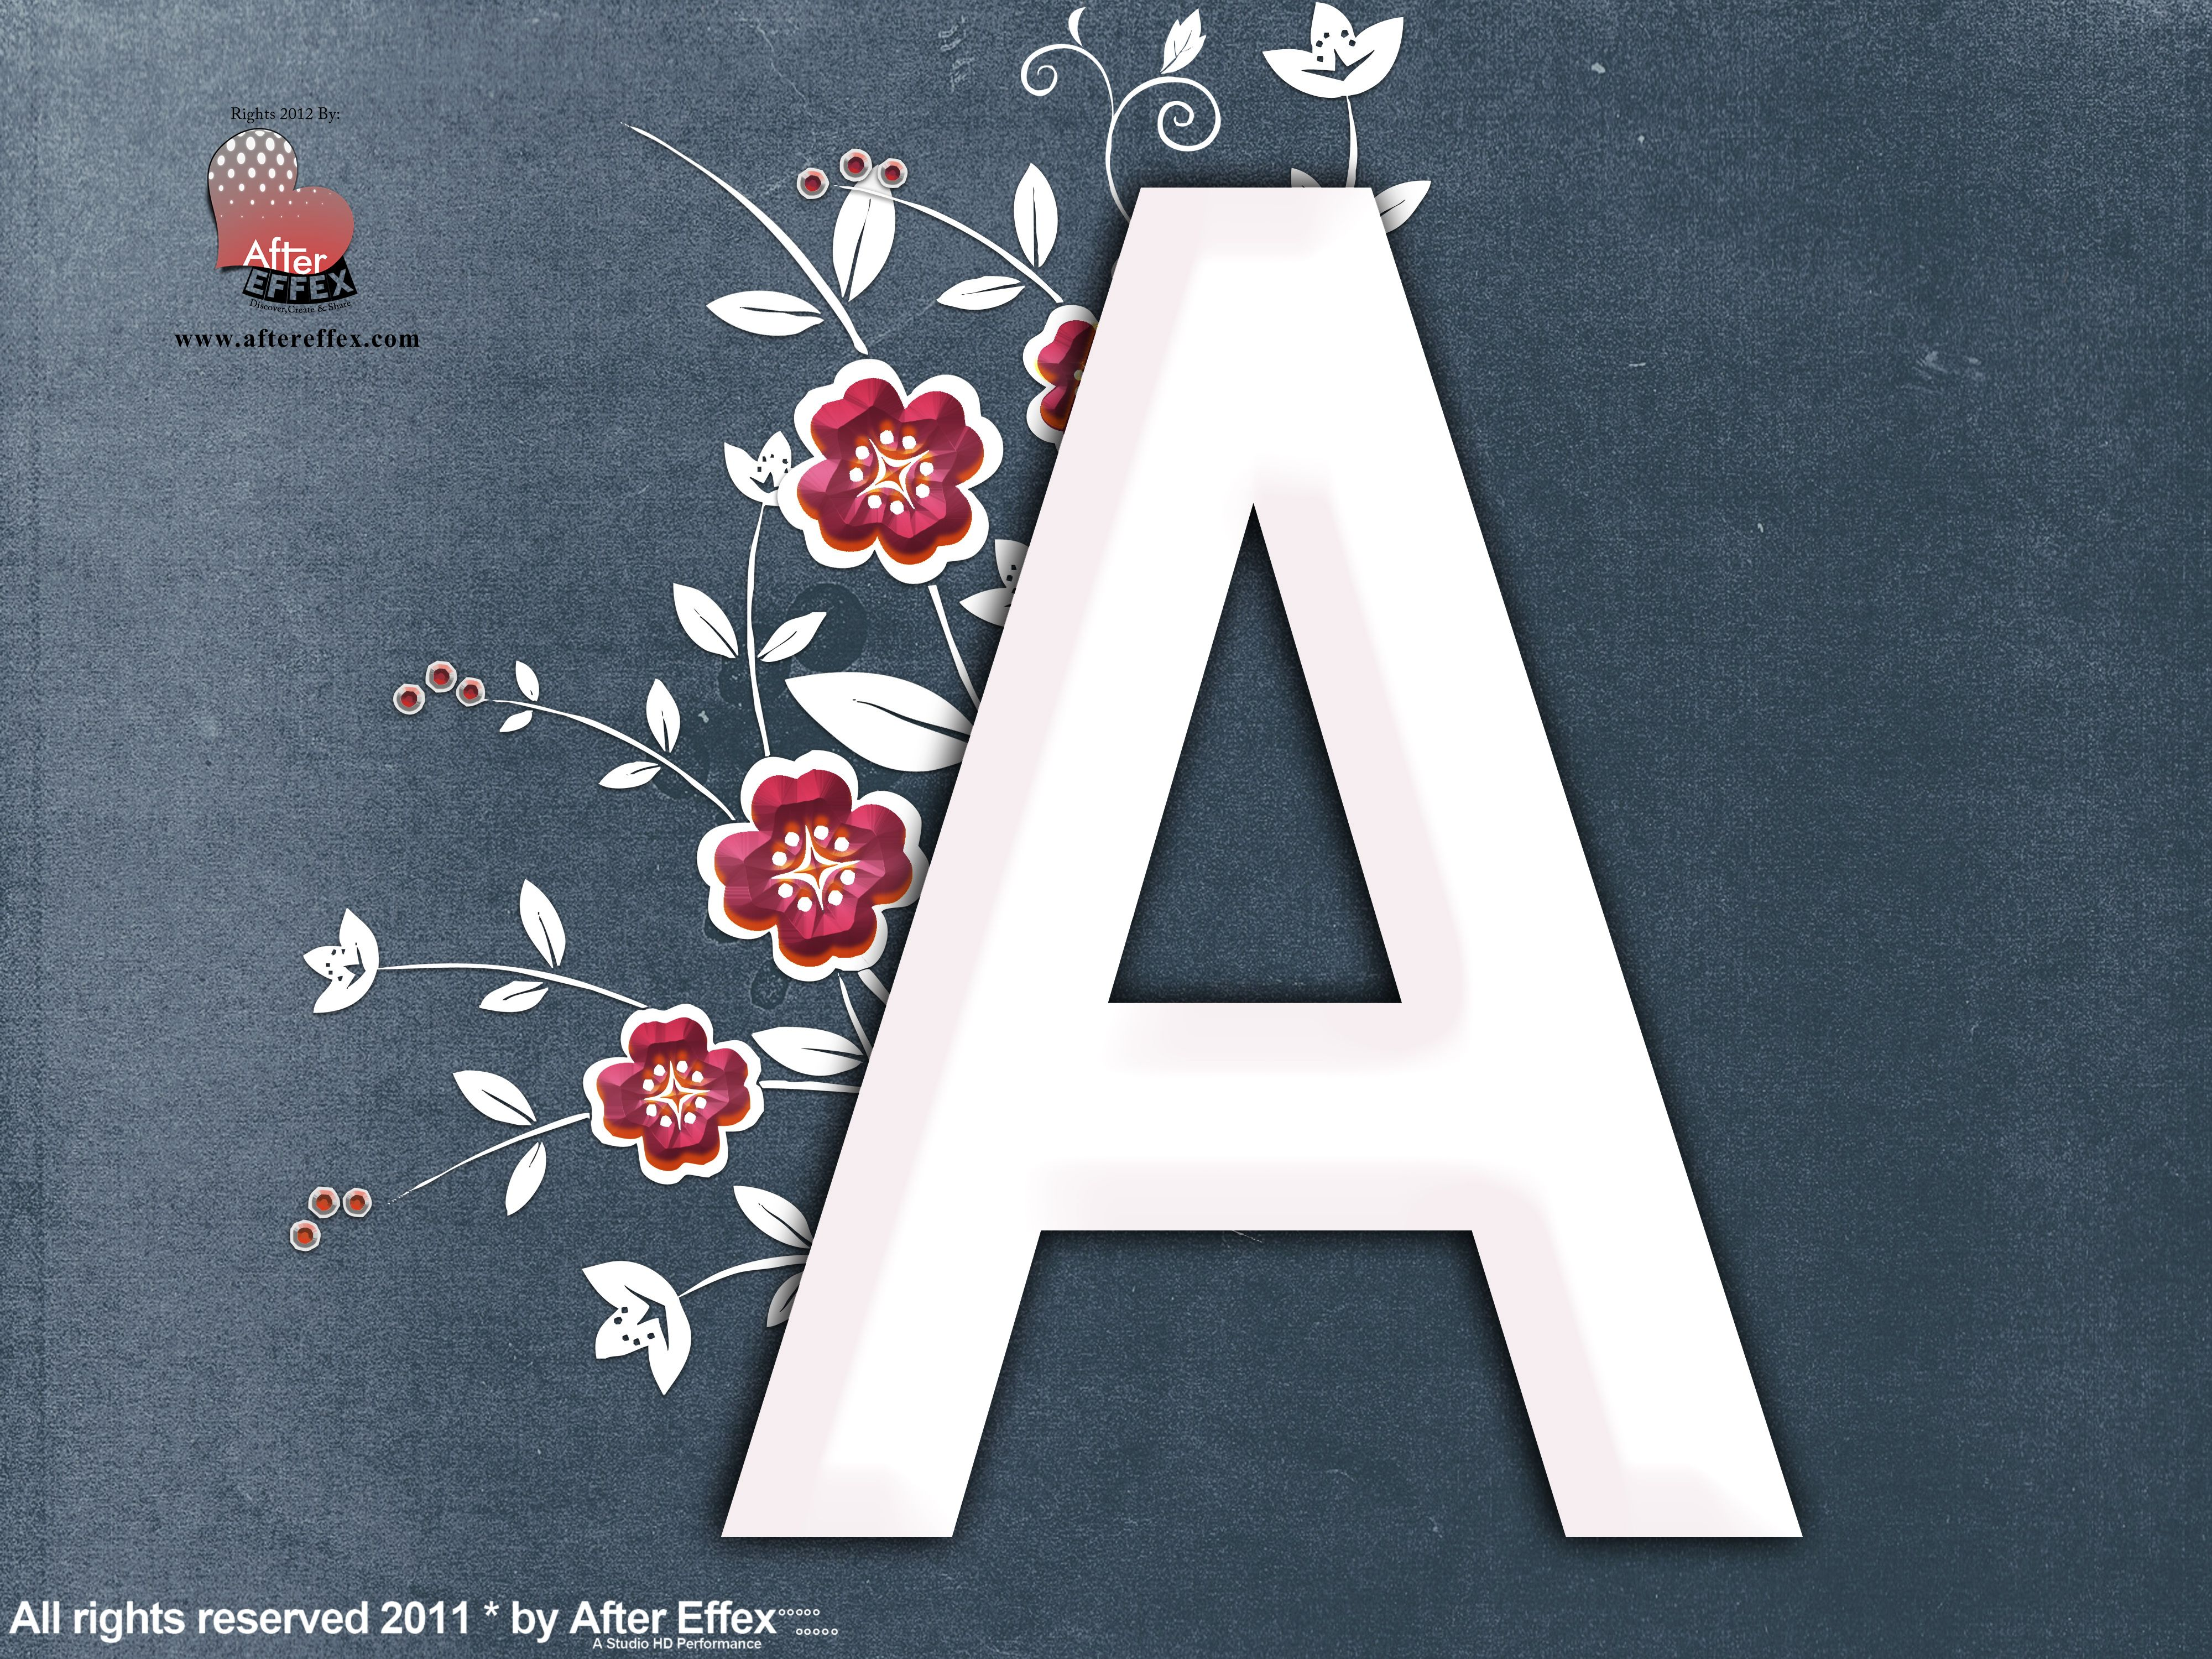 All A To Z Hd Alphabets And Letters For Whatsapp Dp Alphabet Words Words Wallpaper Alphabet